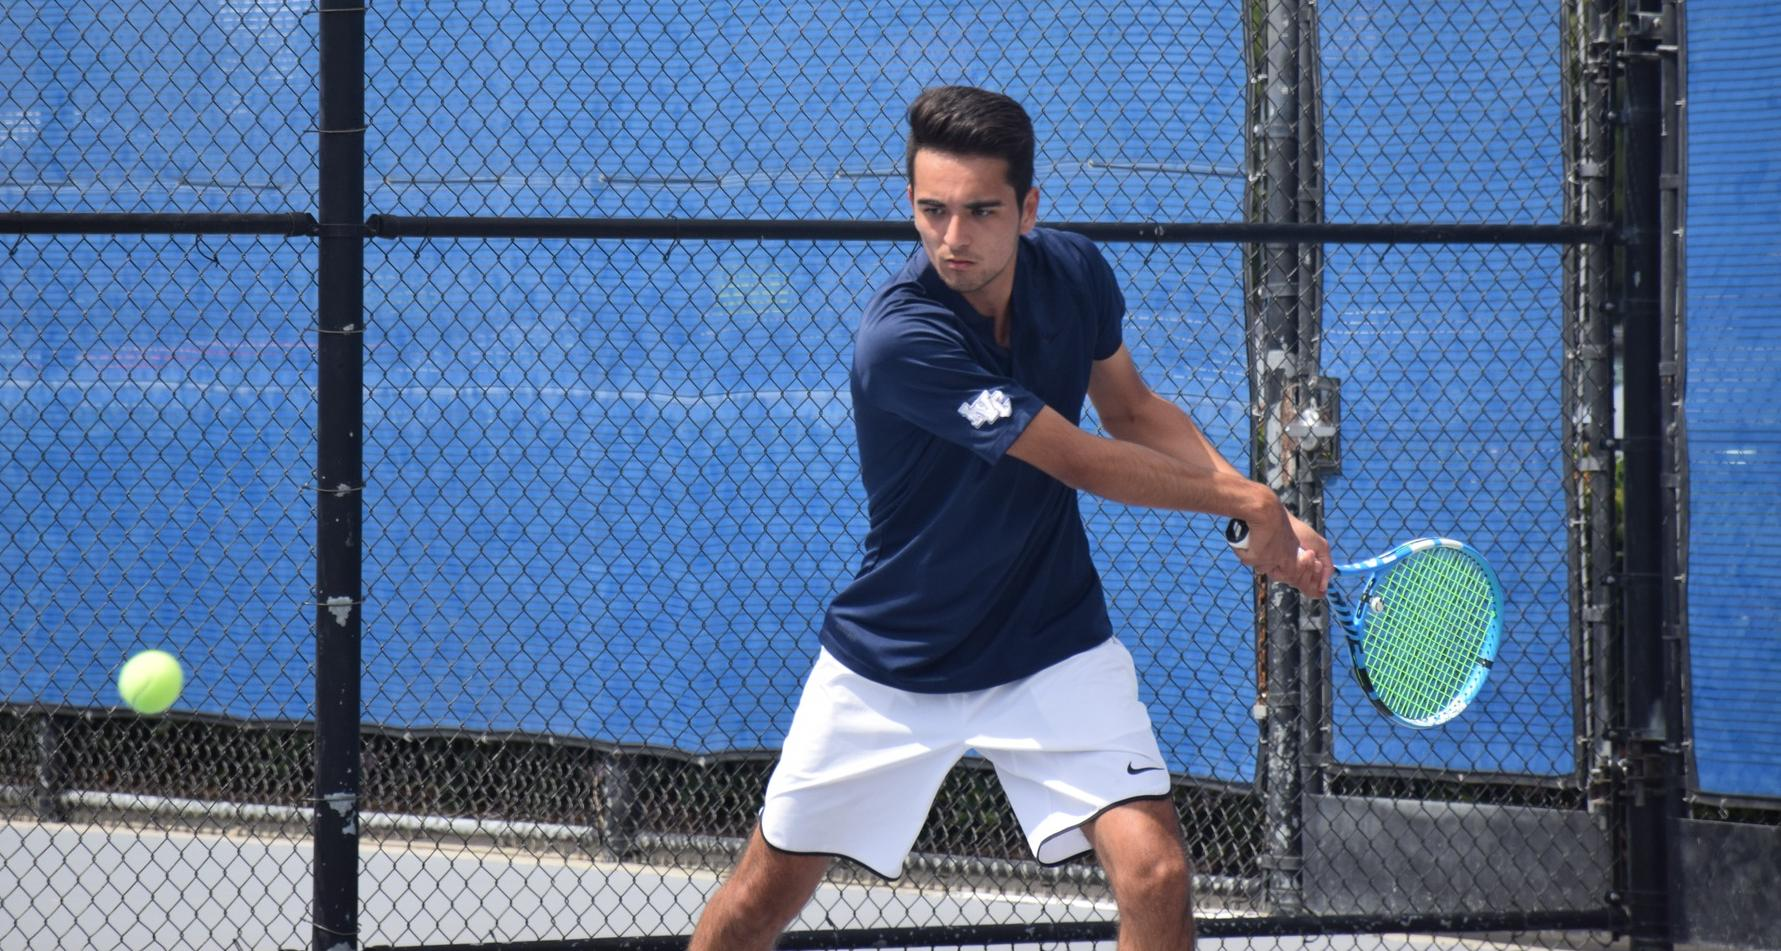 Men's tennis team knocked out of regional playoffs by COD